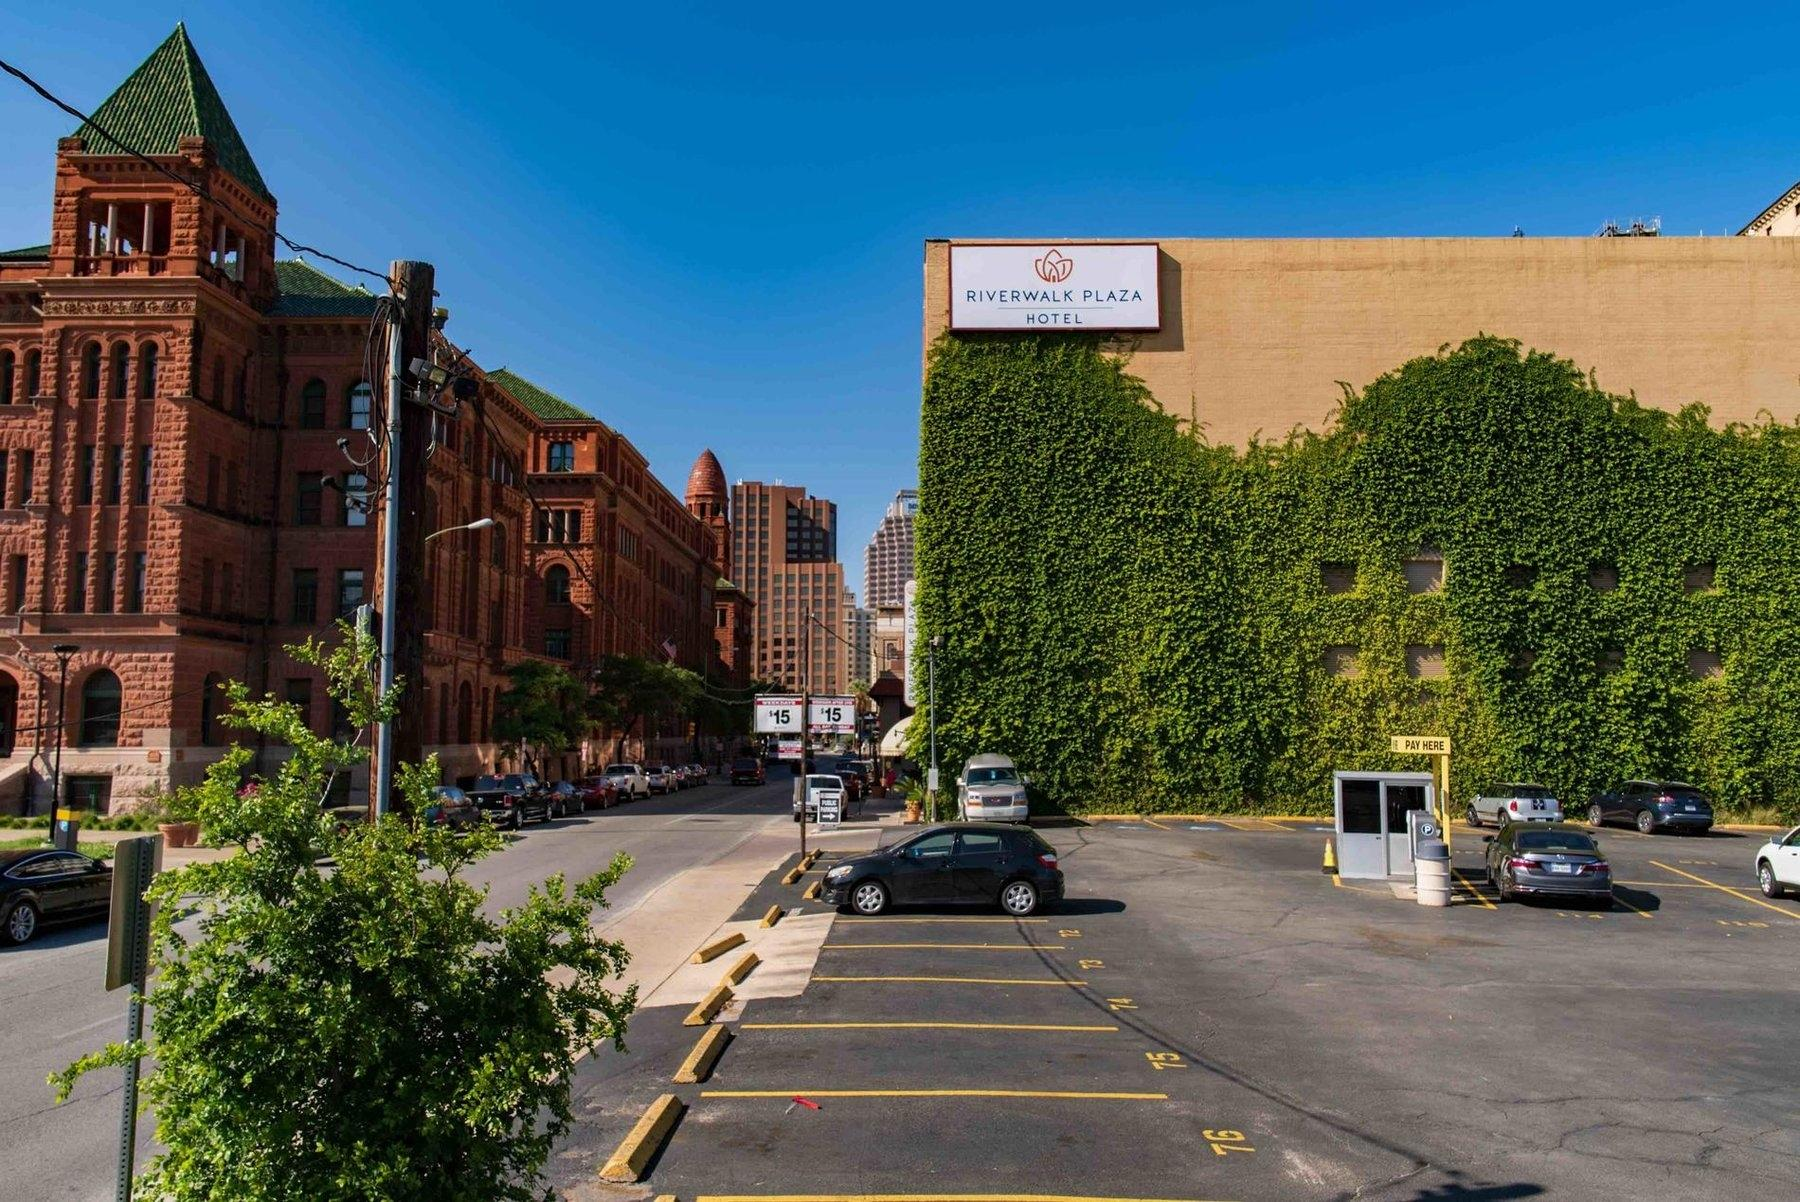 Parking lot and hotel exterior wall covered in ivy